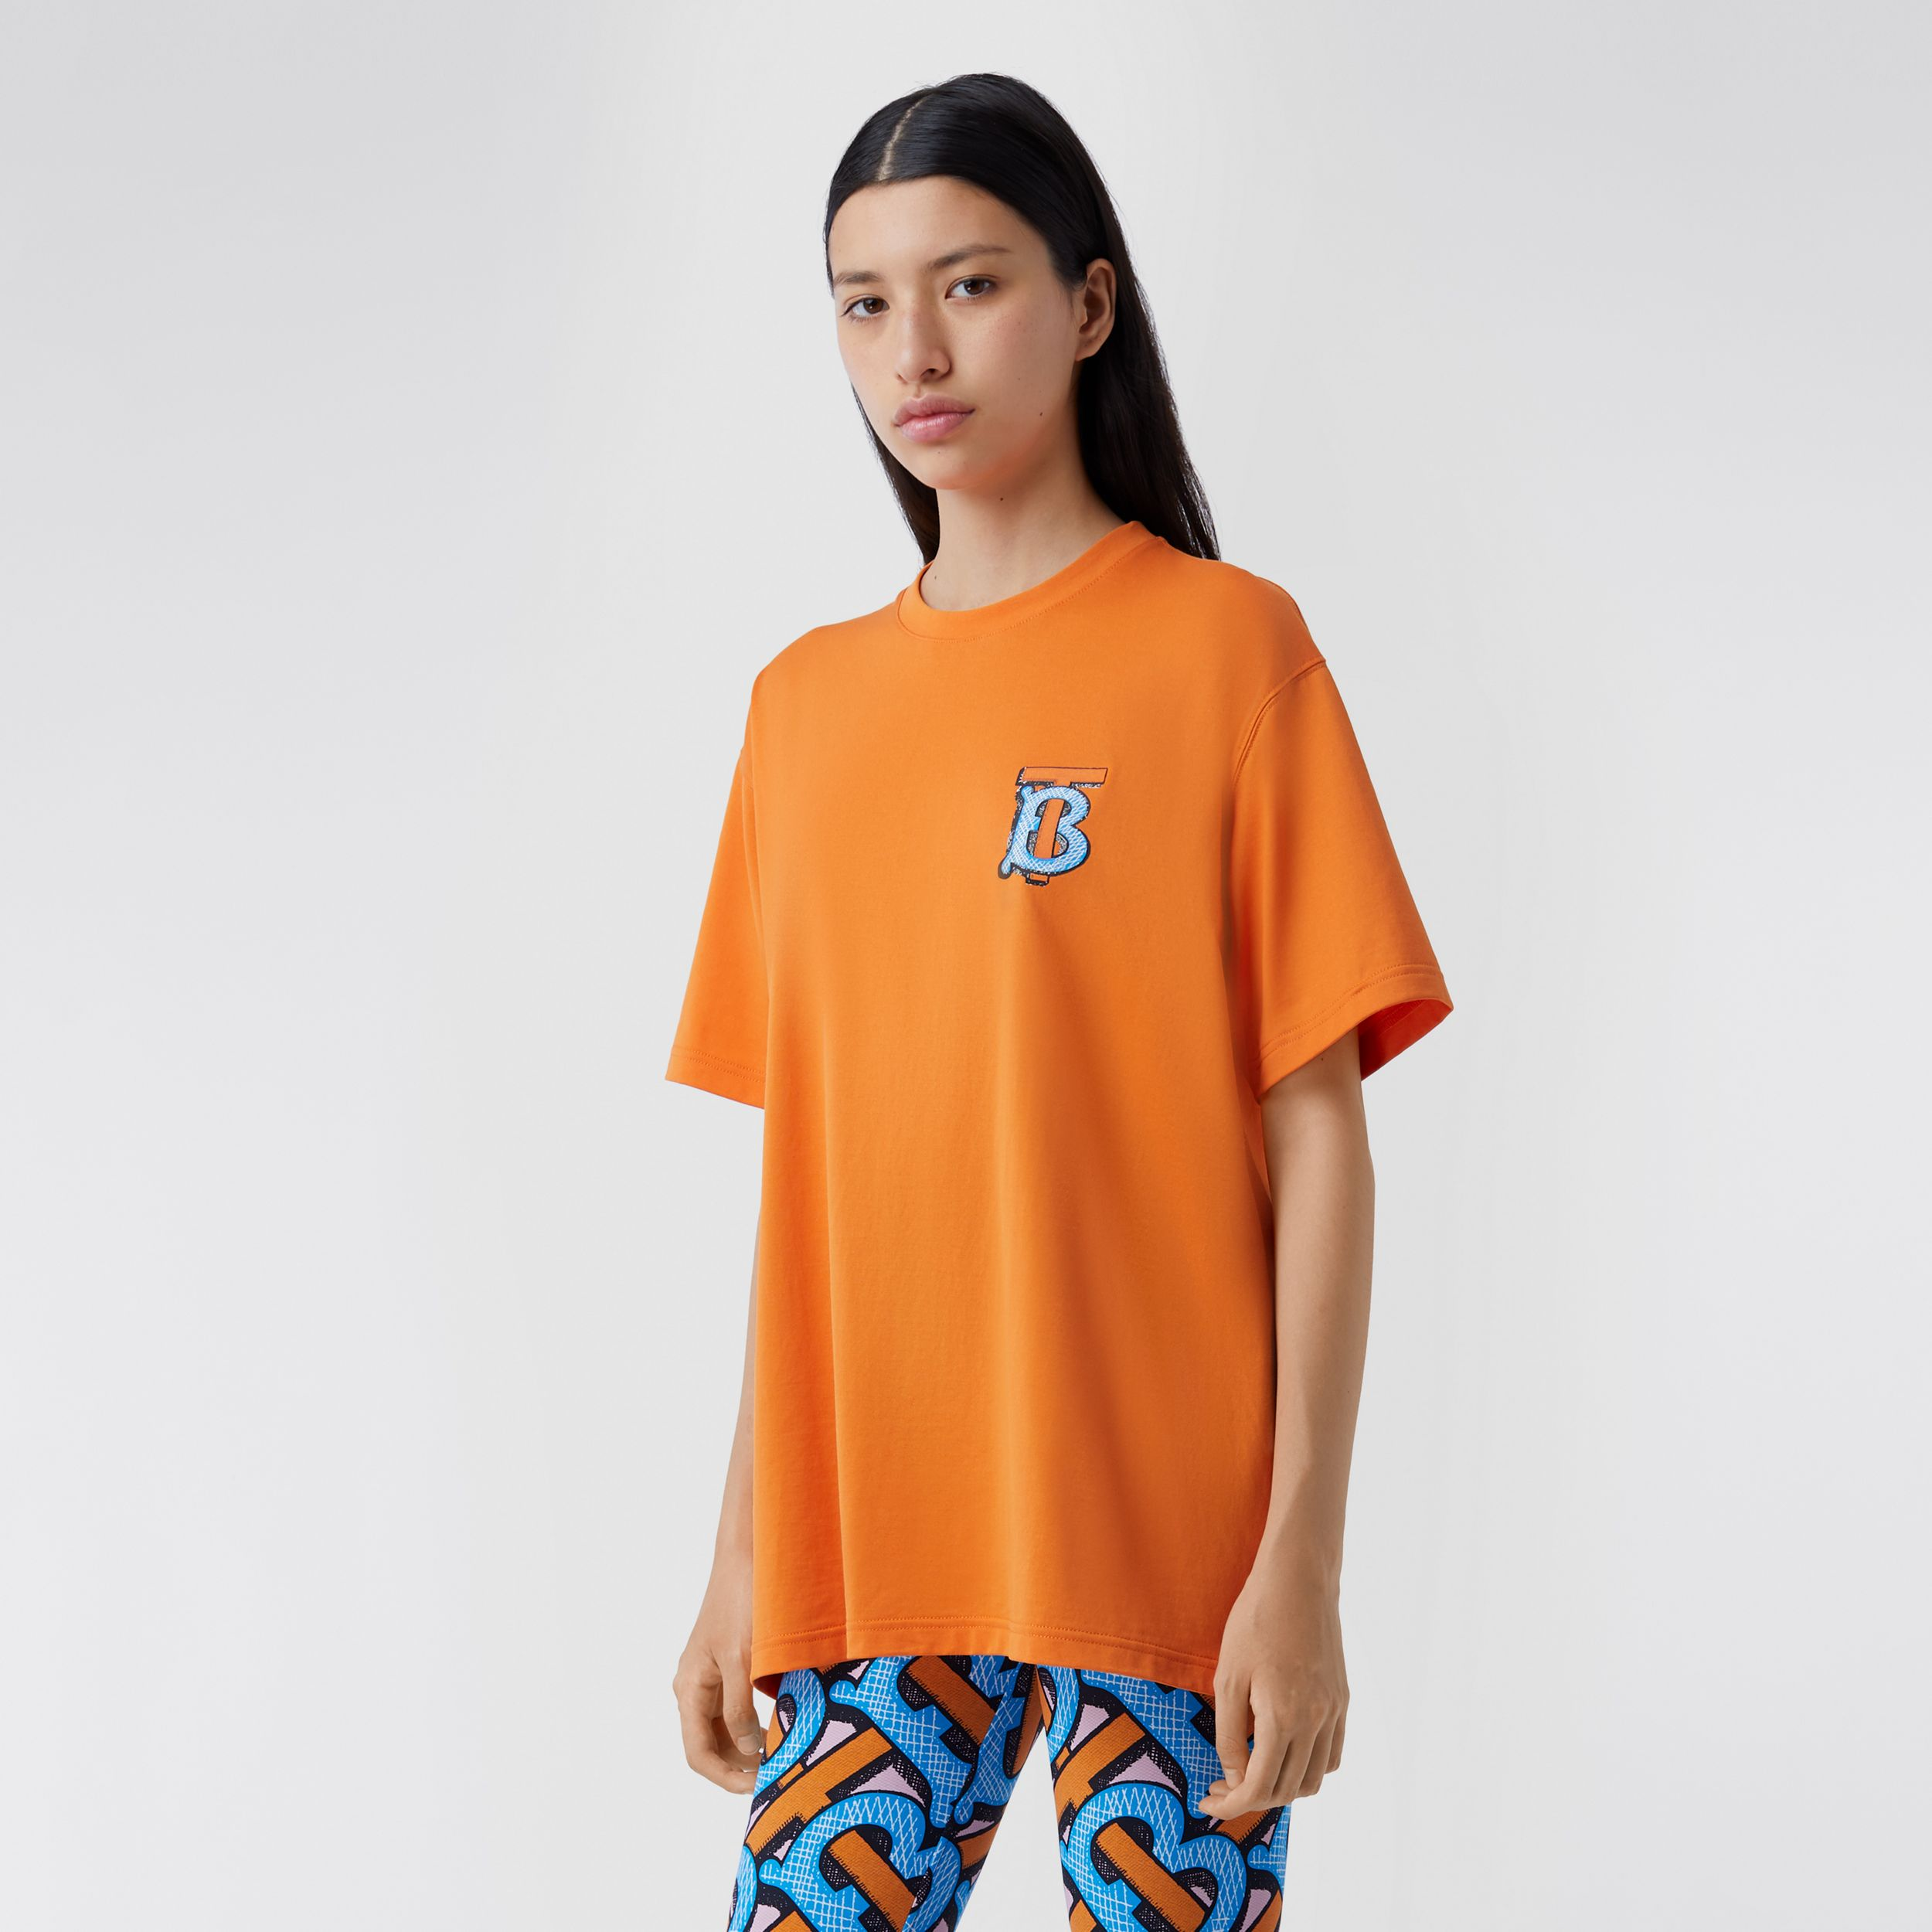 Monogram Motif Cotton T-shirt – Unisex in Bright Orange | Burberry Hong Kong S.A.R. - 2